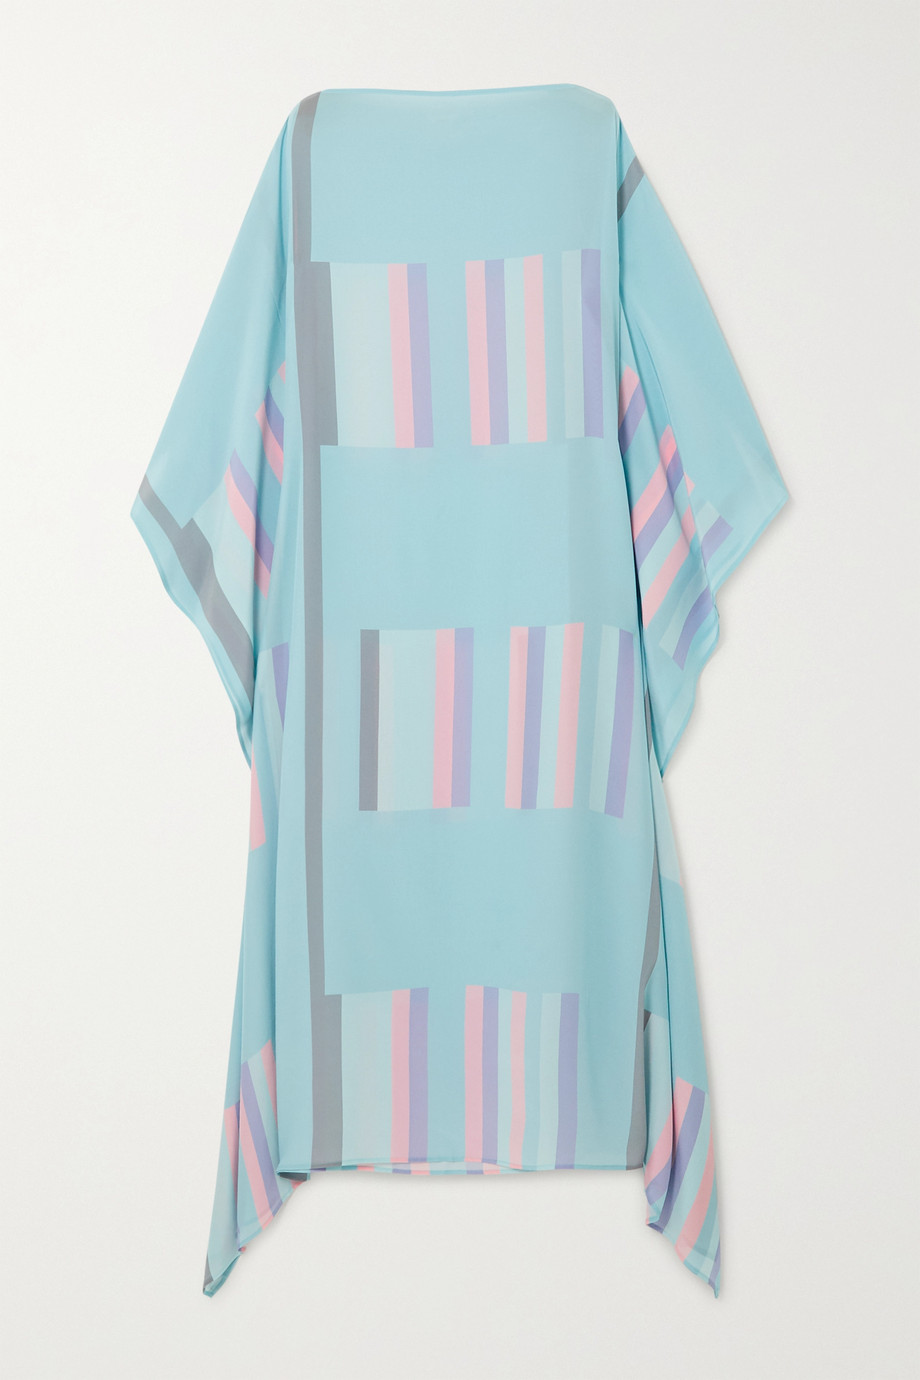 Louisa Parris Sybil striped silk crepe de chine maxi dress